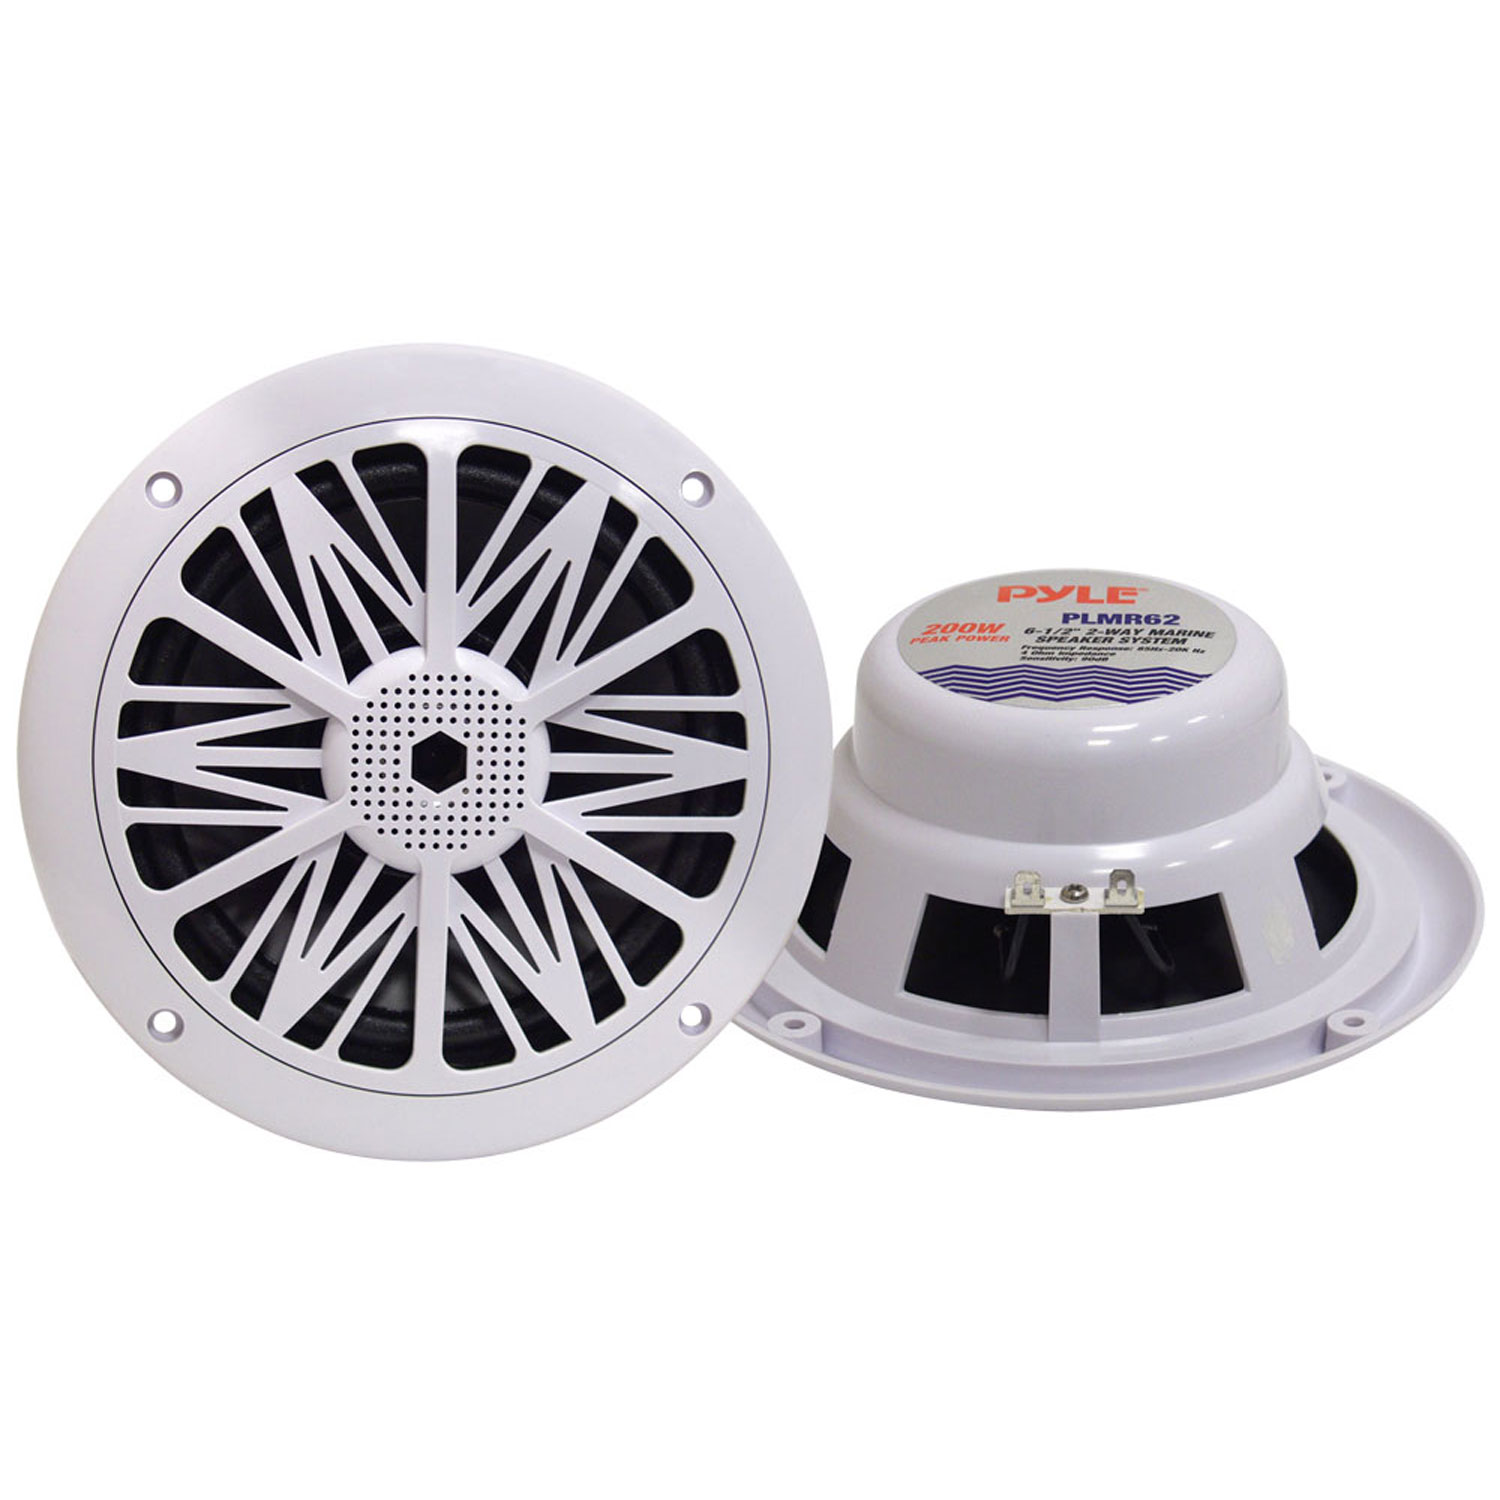 "Pyle 200 Watts 6.5"" 2 Way White Marine Speakers by Pyle"